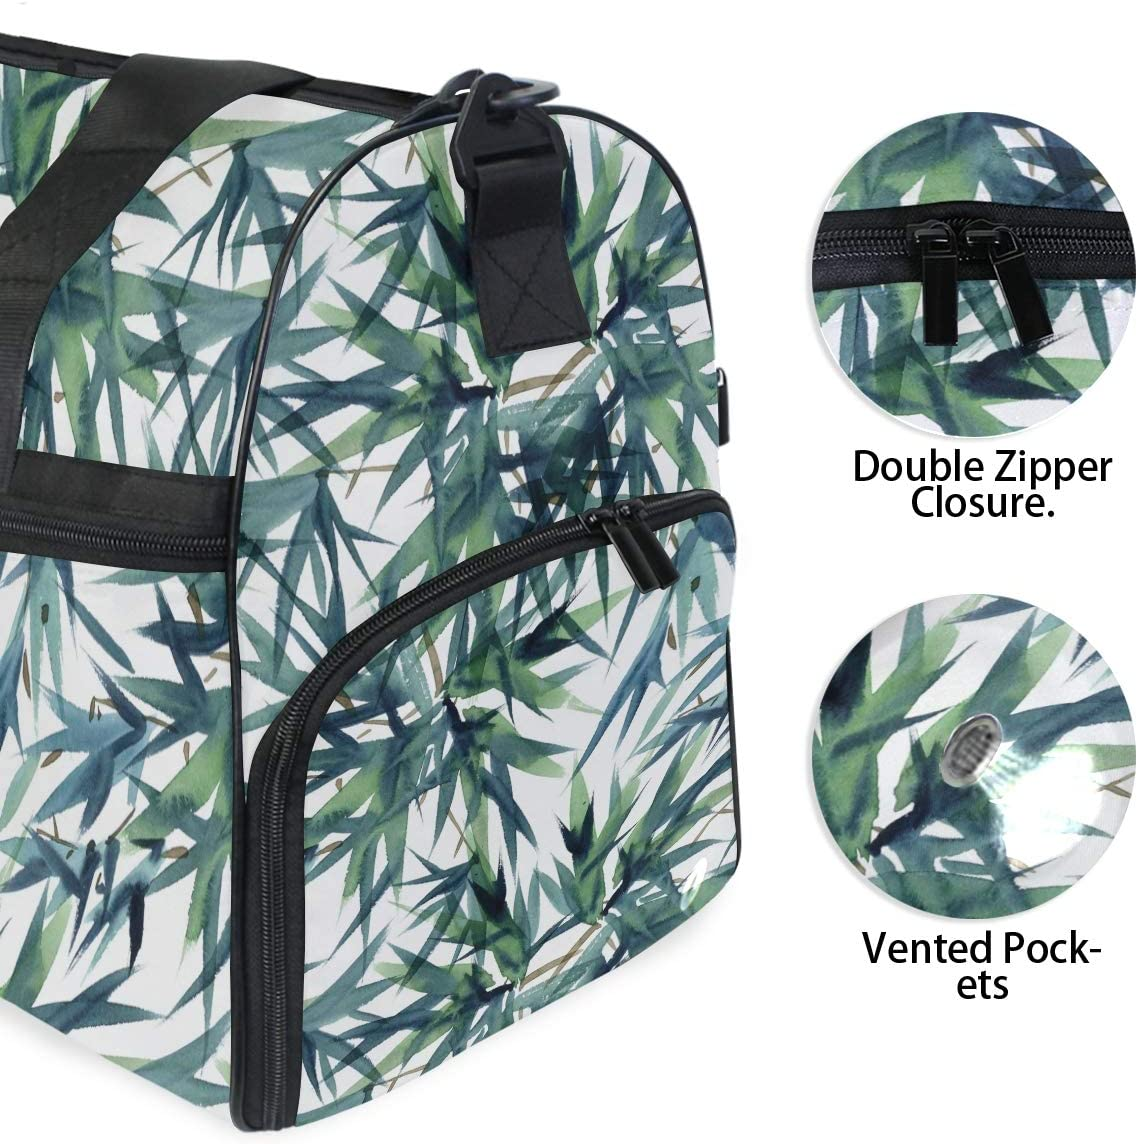 ALAZA Watercolor Japanese Ink Bamboos Sports Gym Duffel Bag Travel Luggage Handbag Shoulder Bag with Shoes Compartment for Men Women